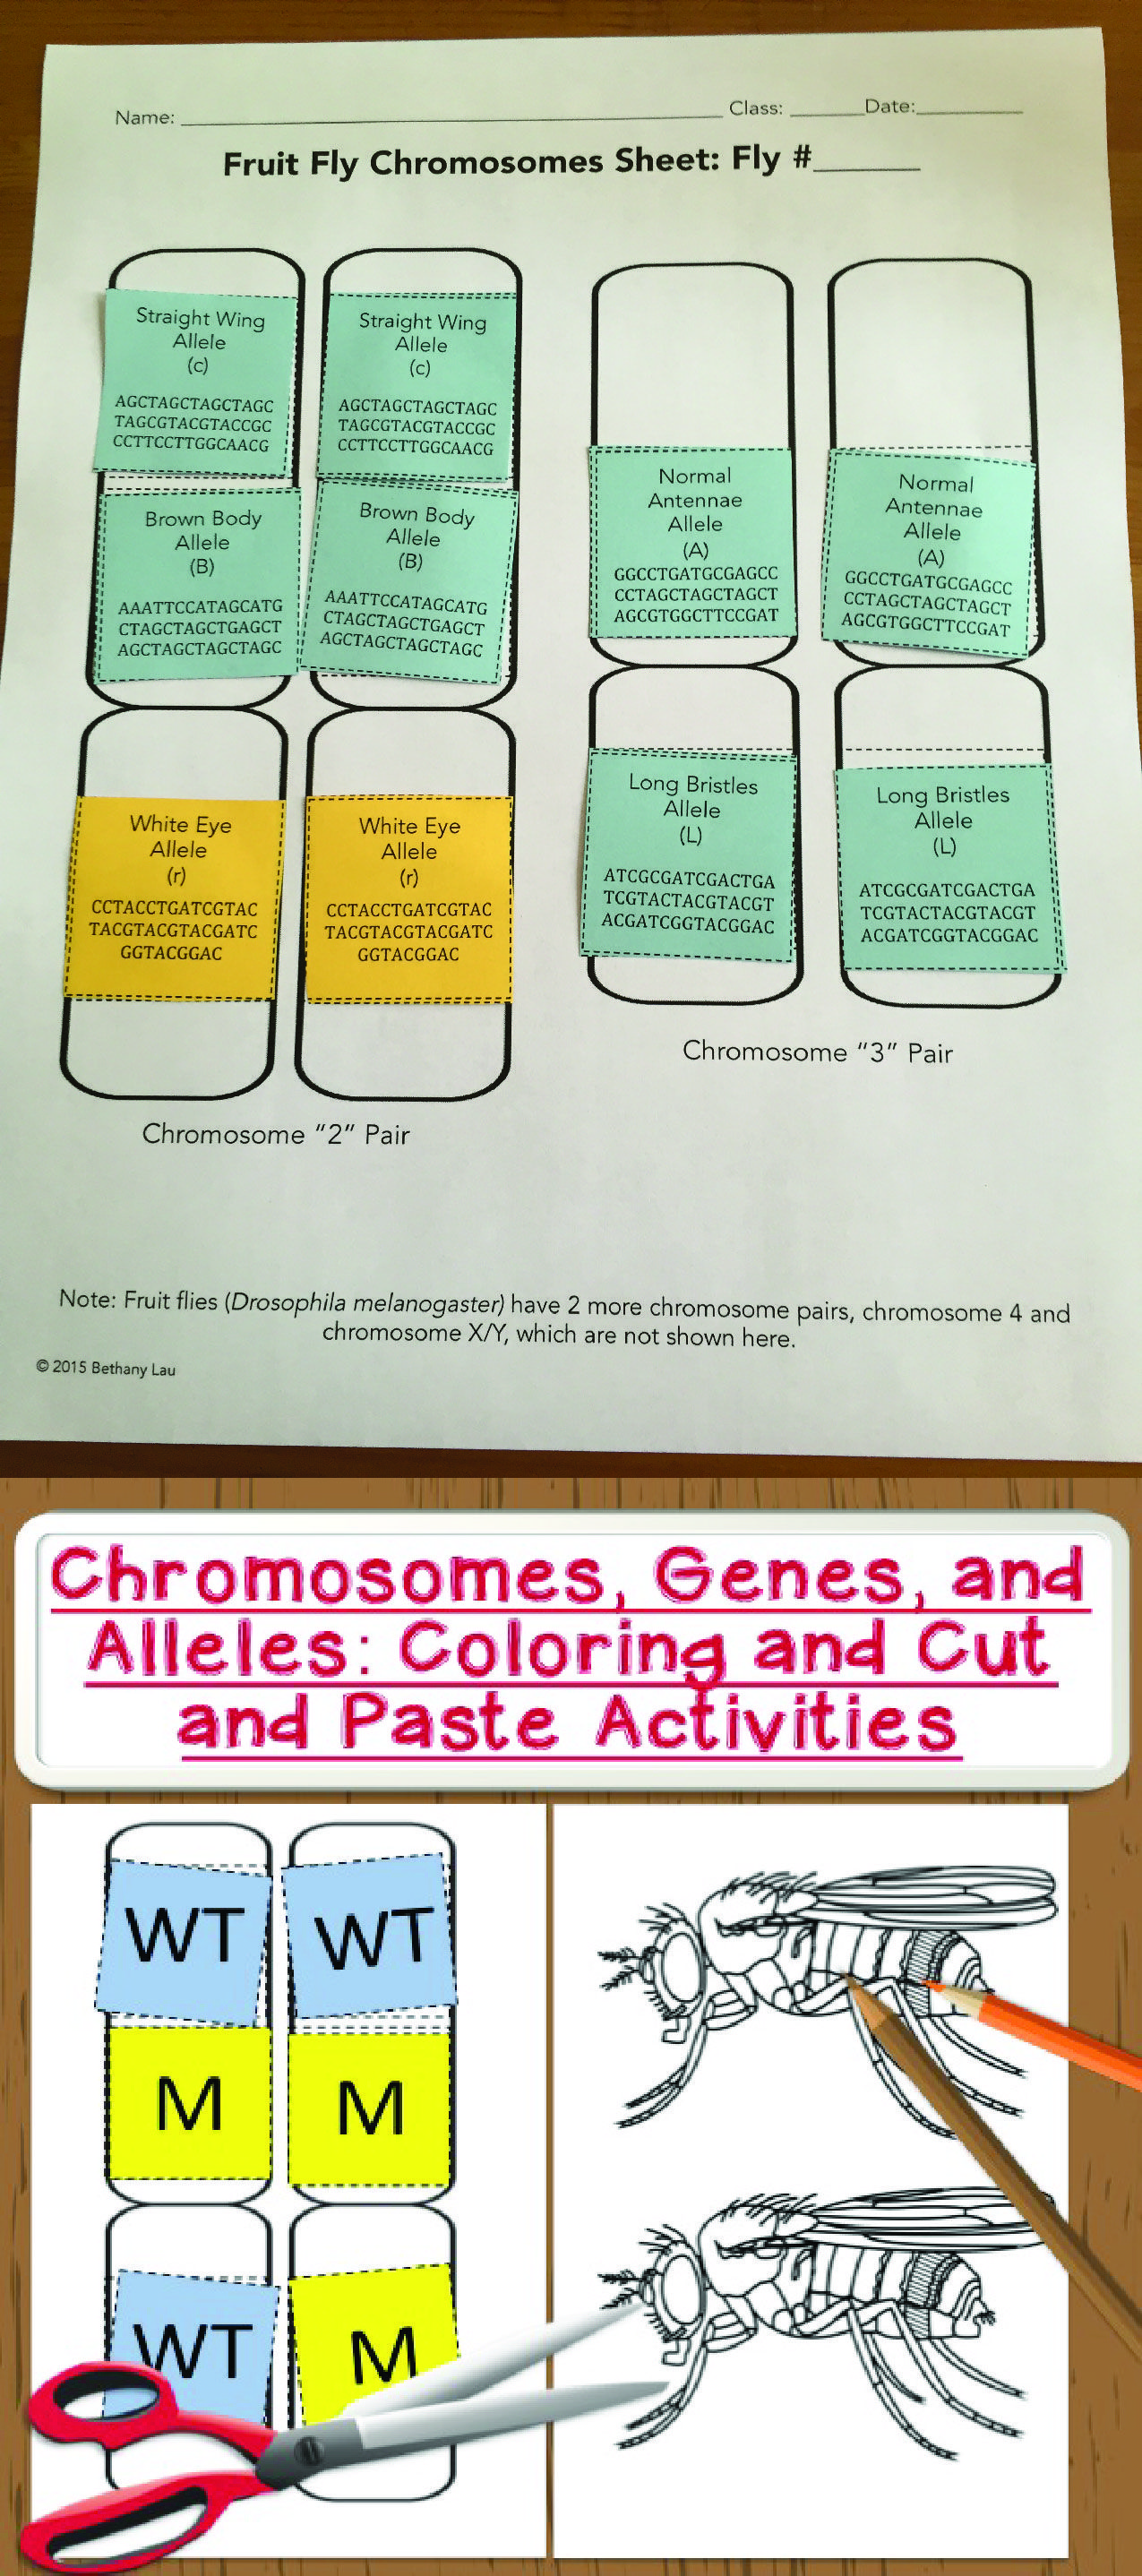 Chromosomes Genes And Alleles Cut And Paste Coloring Activity